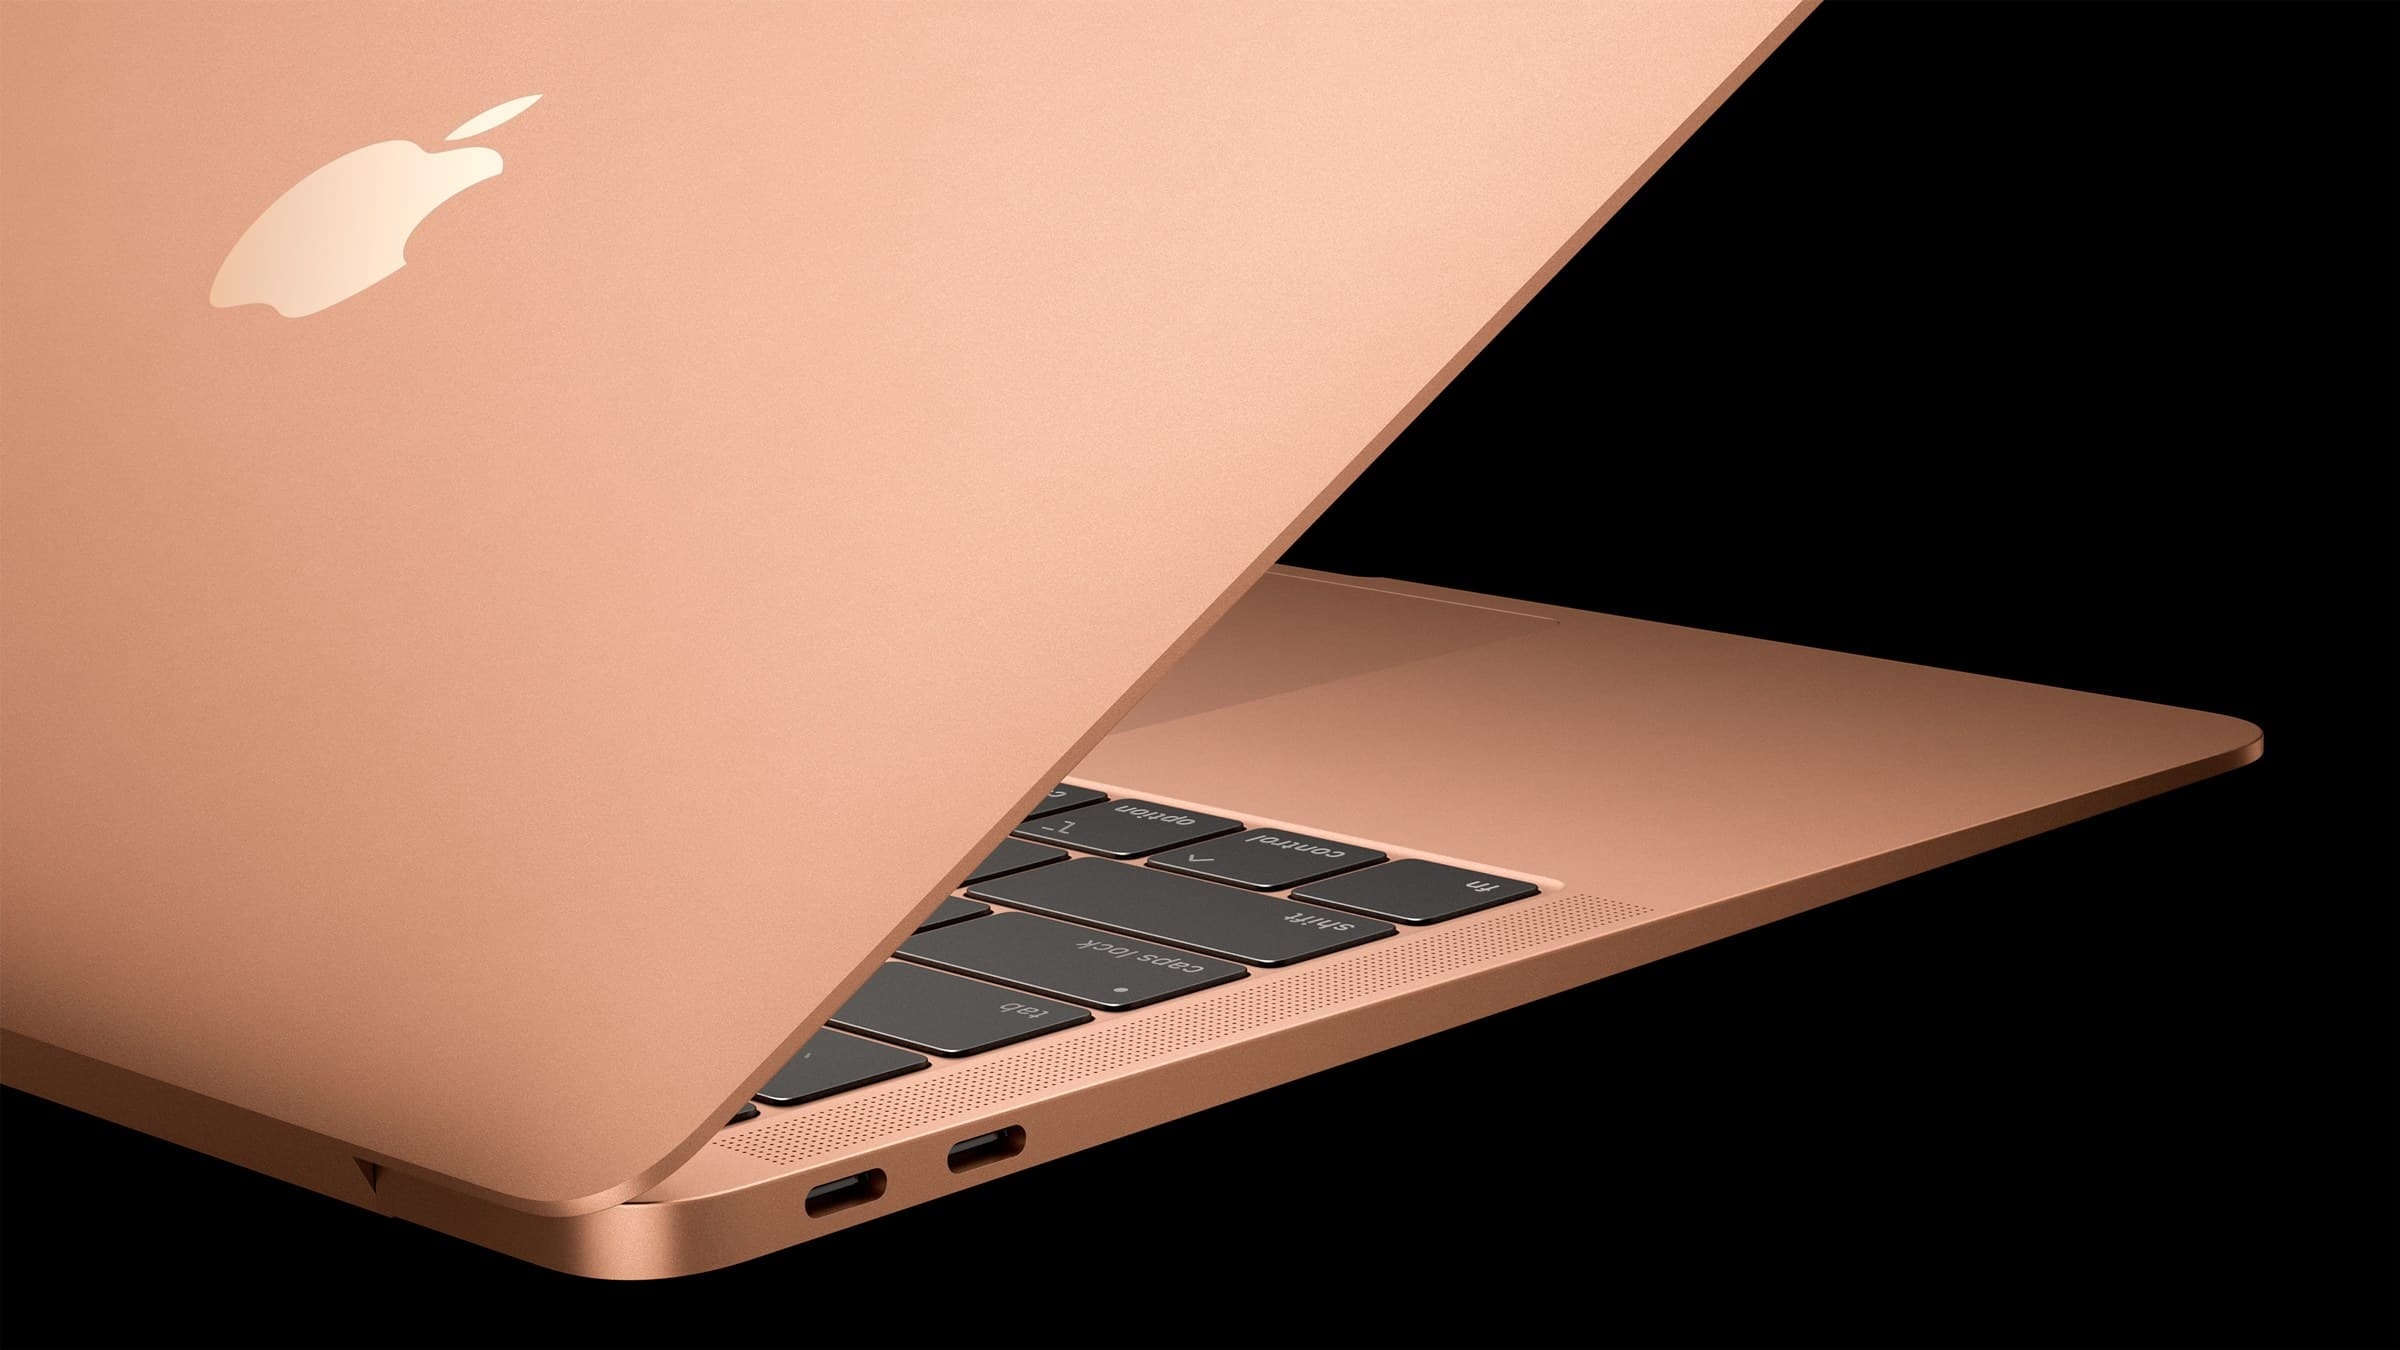 Какой MacBook выбрать в 2019 году